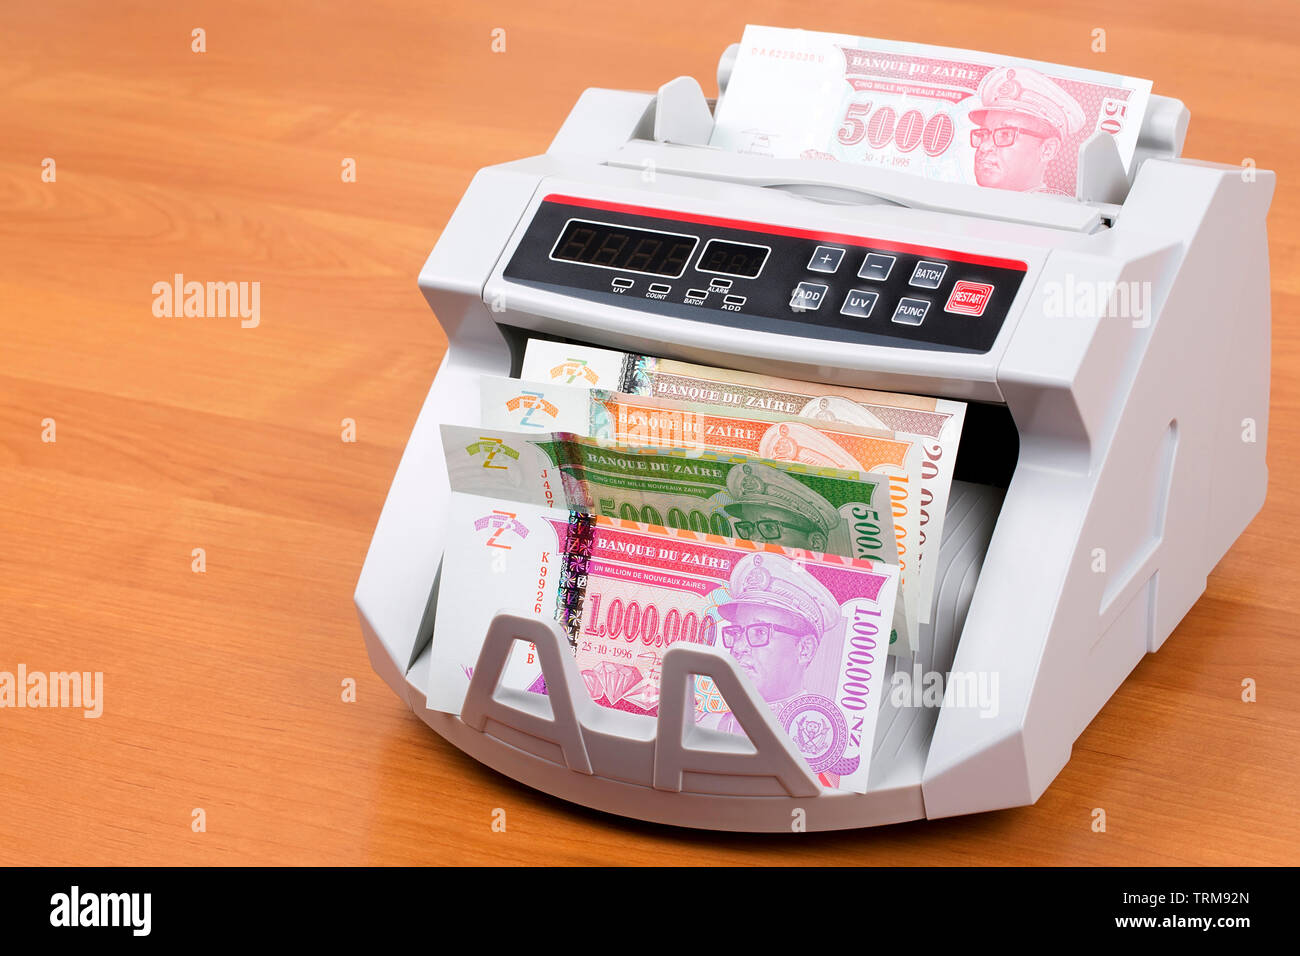 Zairean money in a counting machine - Stock Image